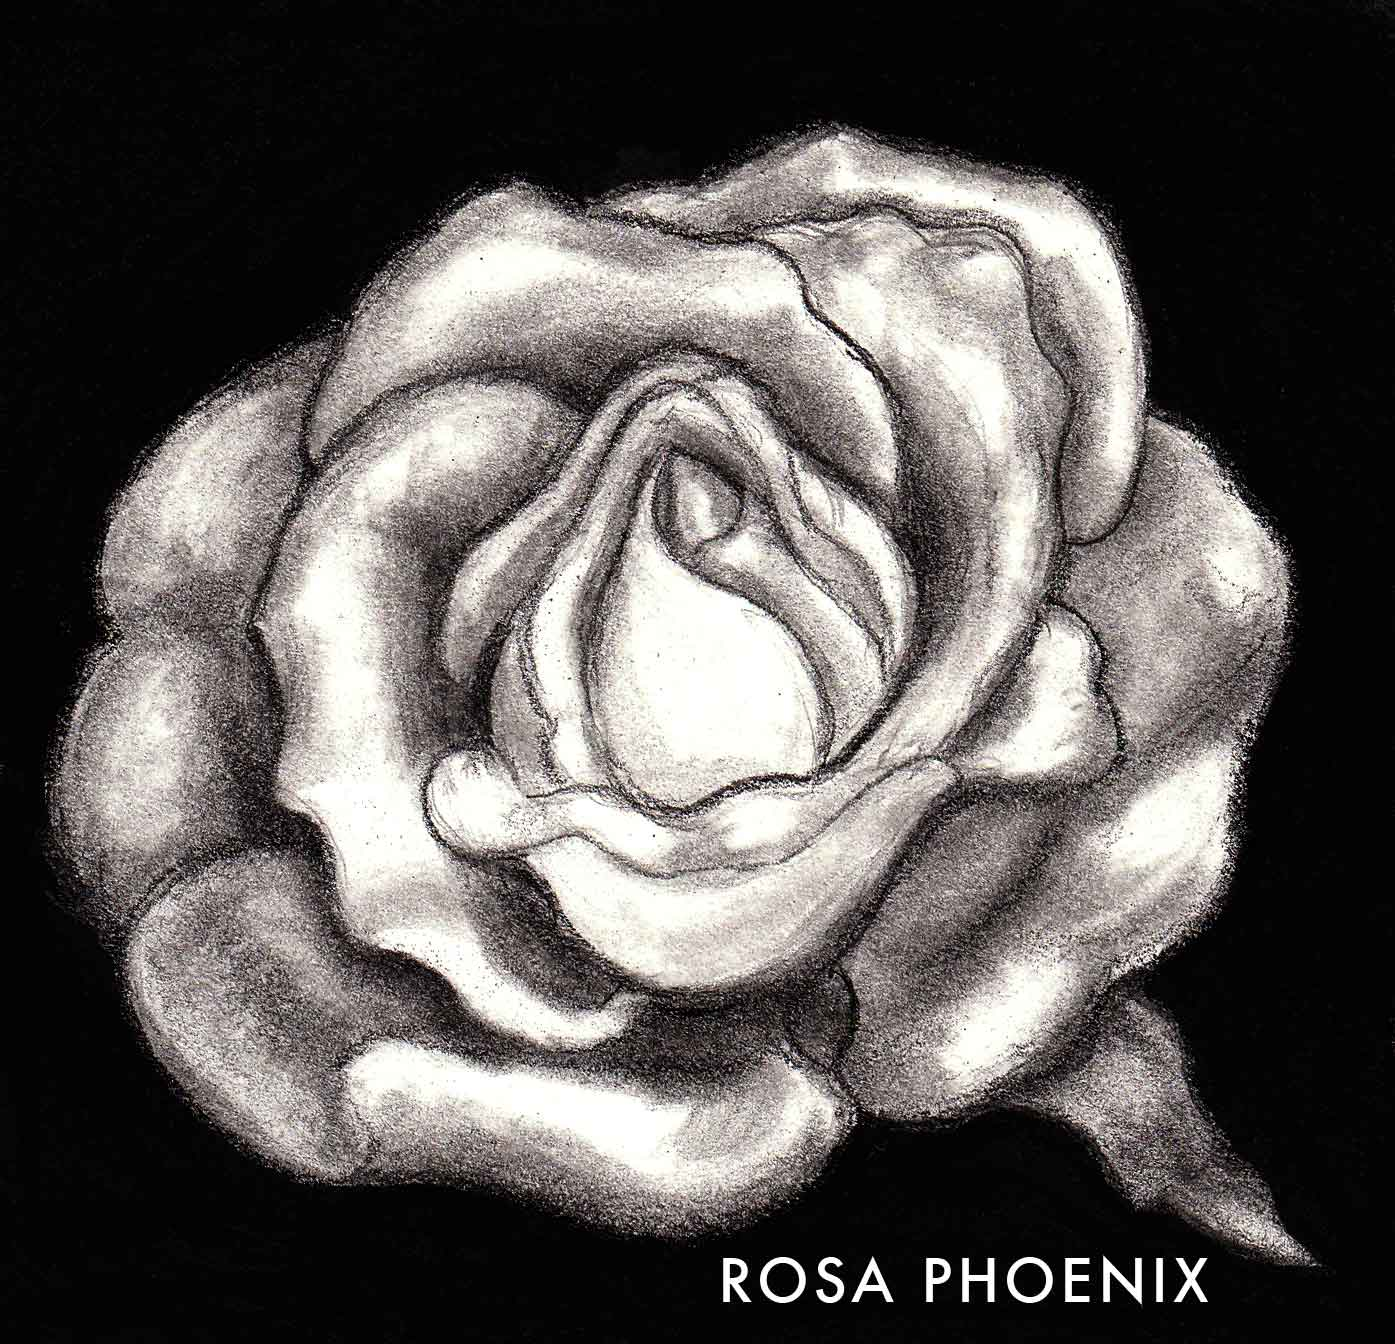 pencil drawing rose by Rosa Phoenix